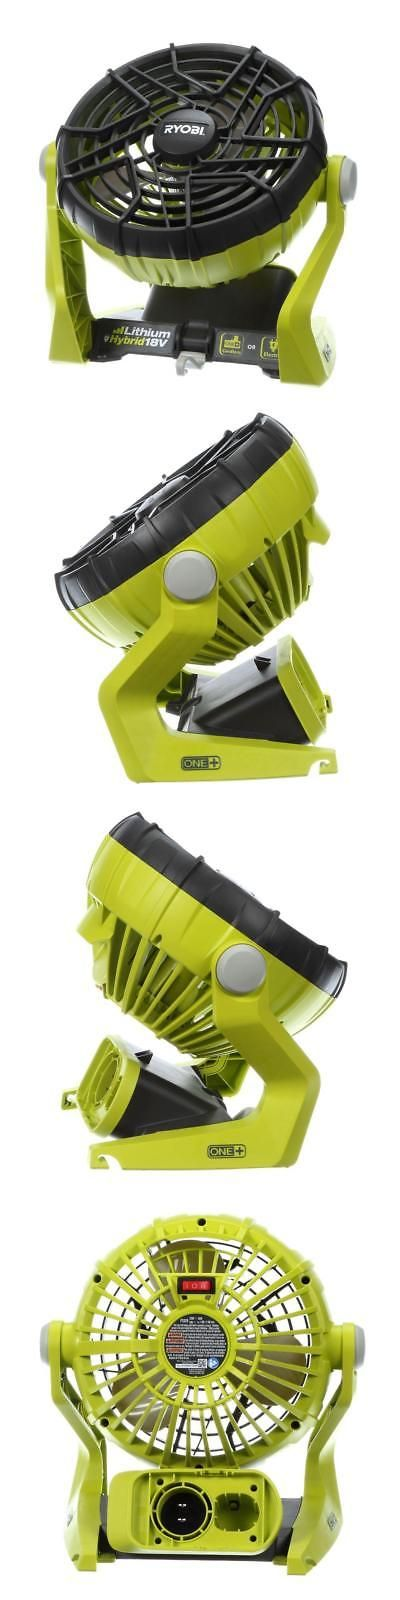 Portable Fans 20612: Hybrid Portable Fan 18 Volt Cordless Battery Power Operated Jobsite Tool Shop -> BUY IT NOW ONLY: $52.5 on eBay!